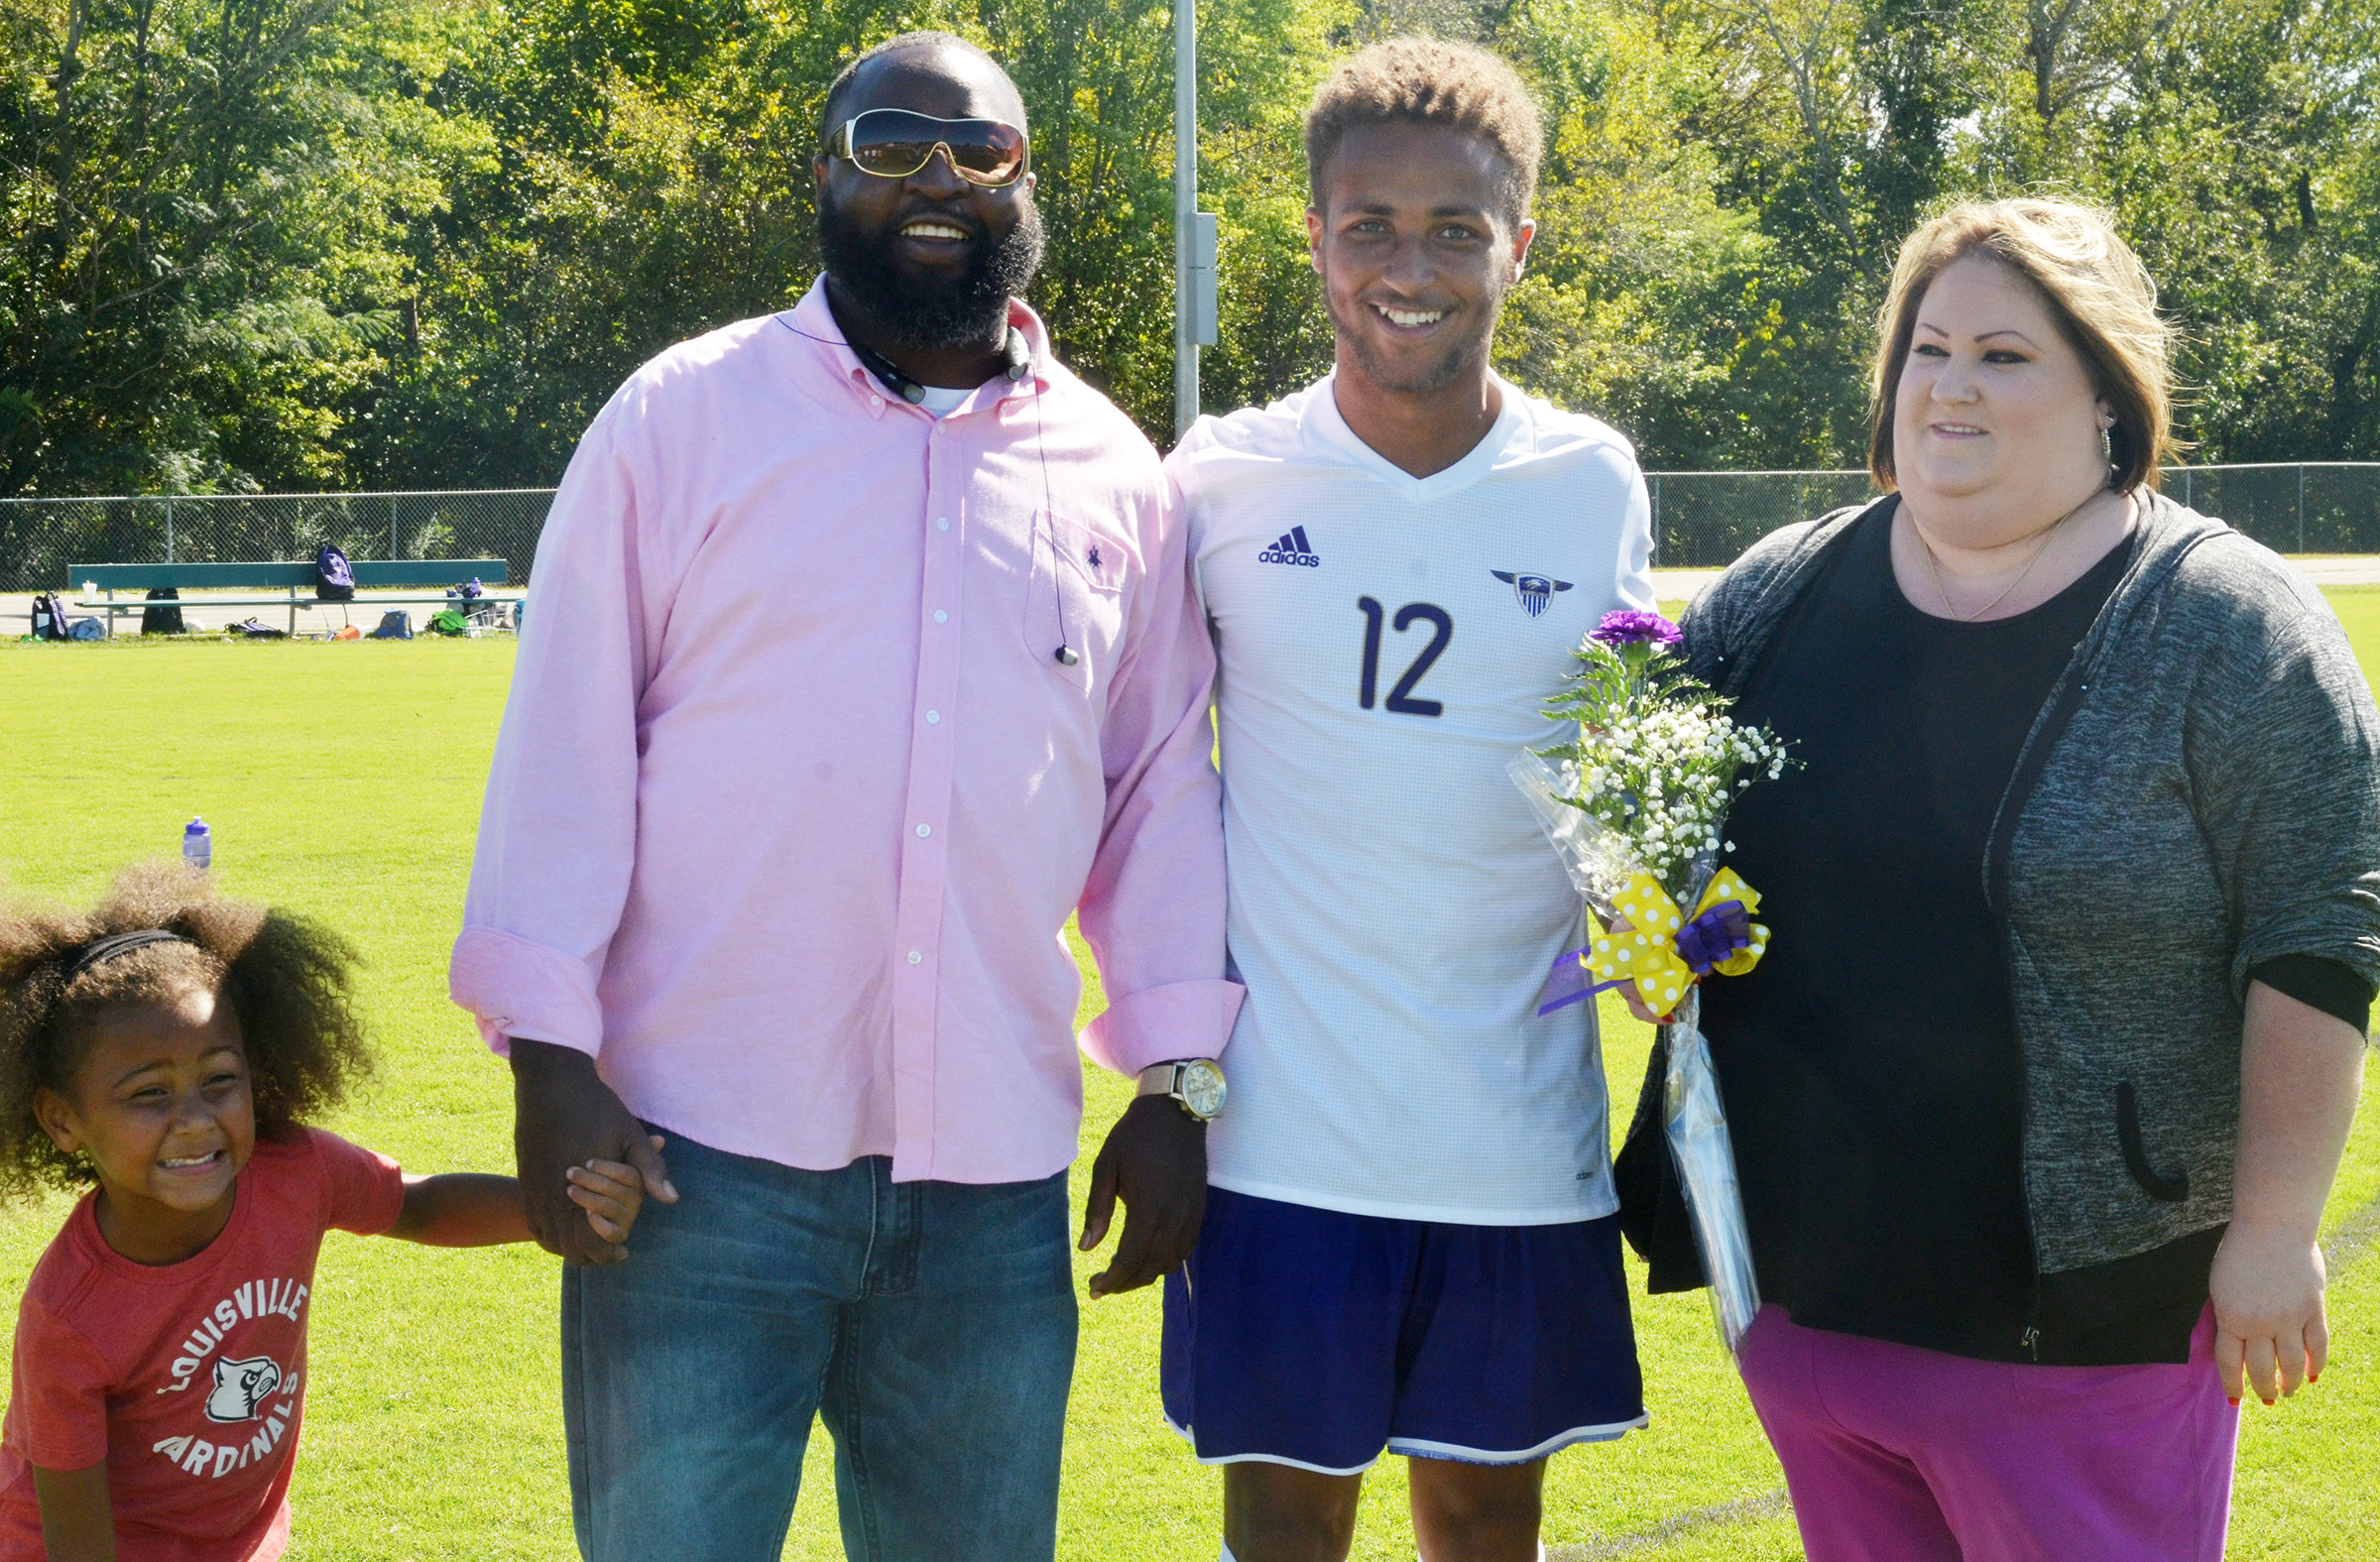 CHS senior soccer player Ethan Lay is honored.